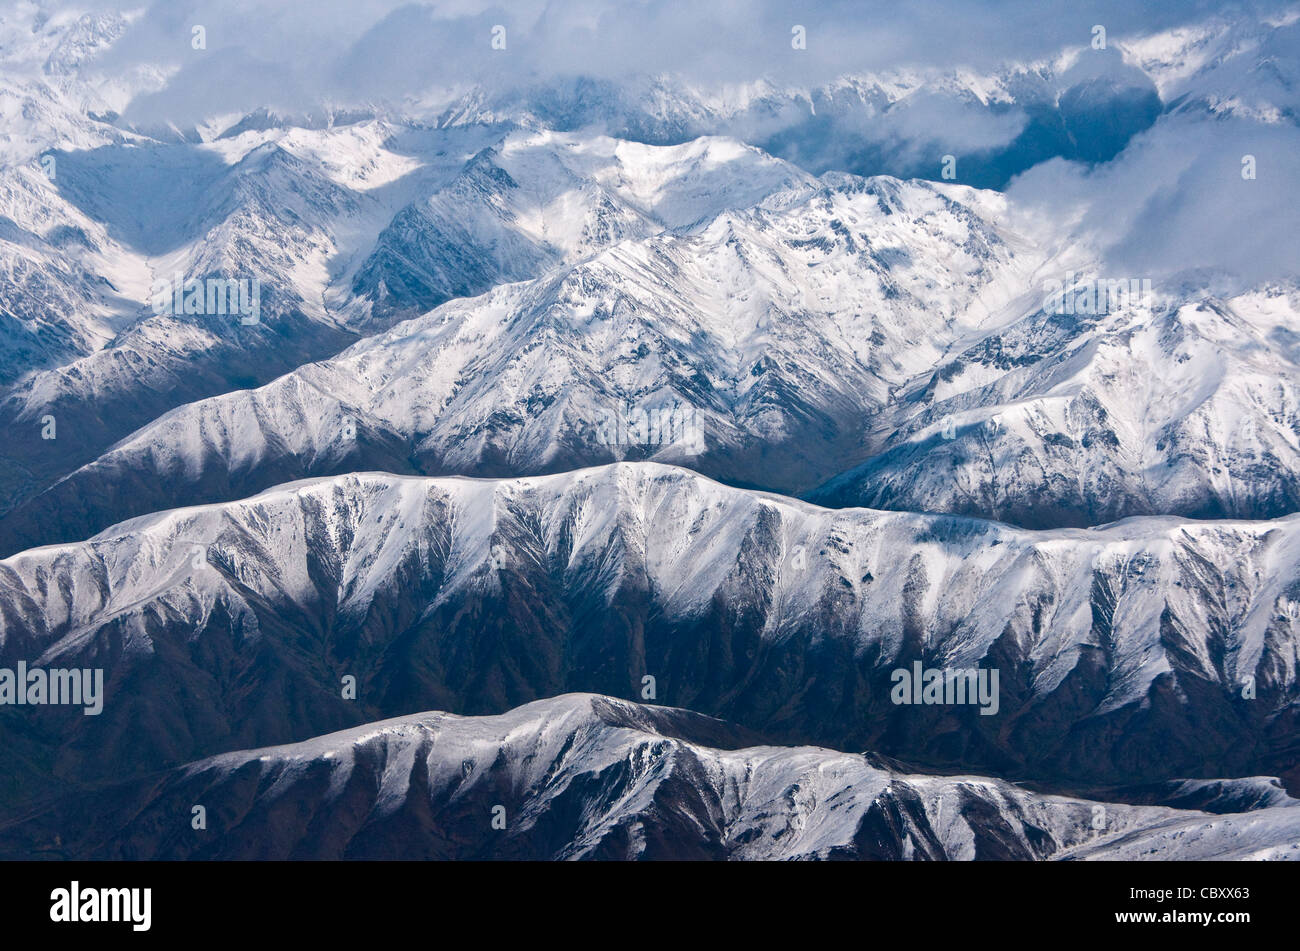 Snow-capped Southern Alps on South Island of New Zealand - Stock Image